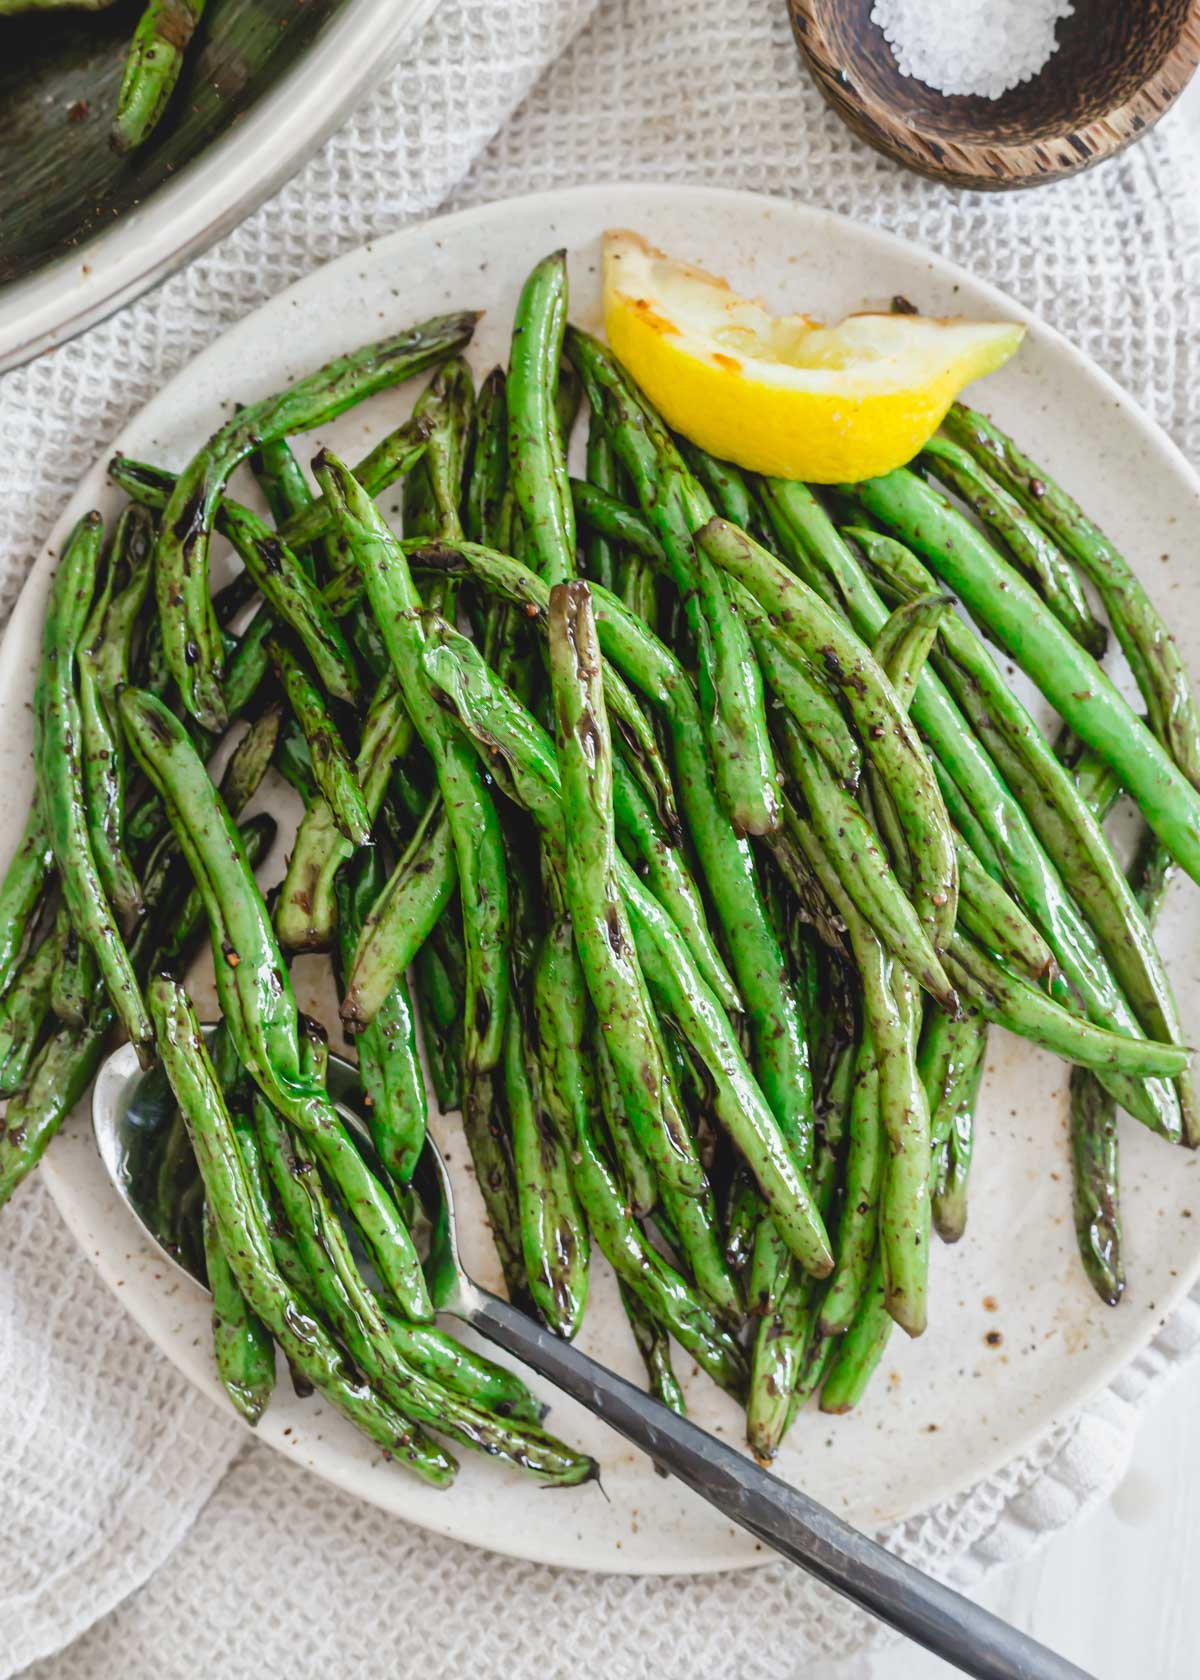 Grilled green beans with lemon on a plate.